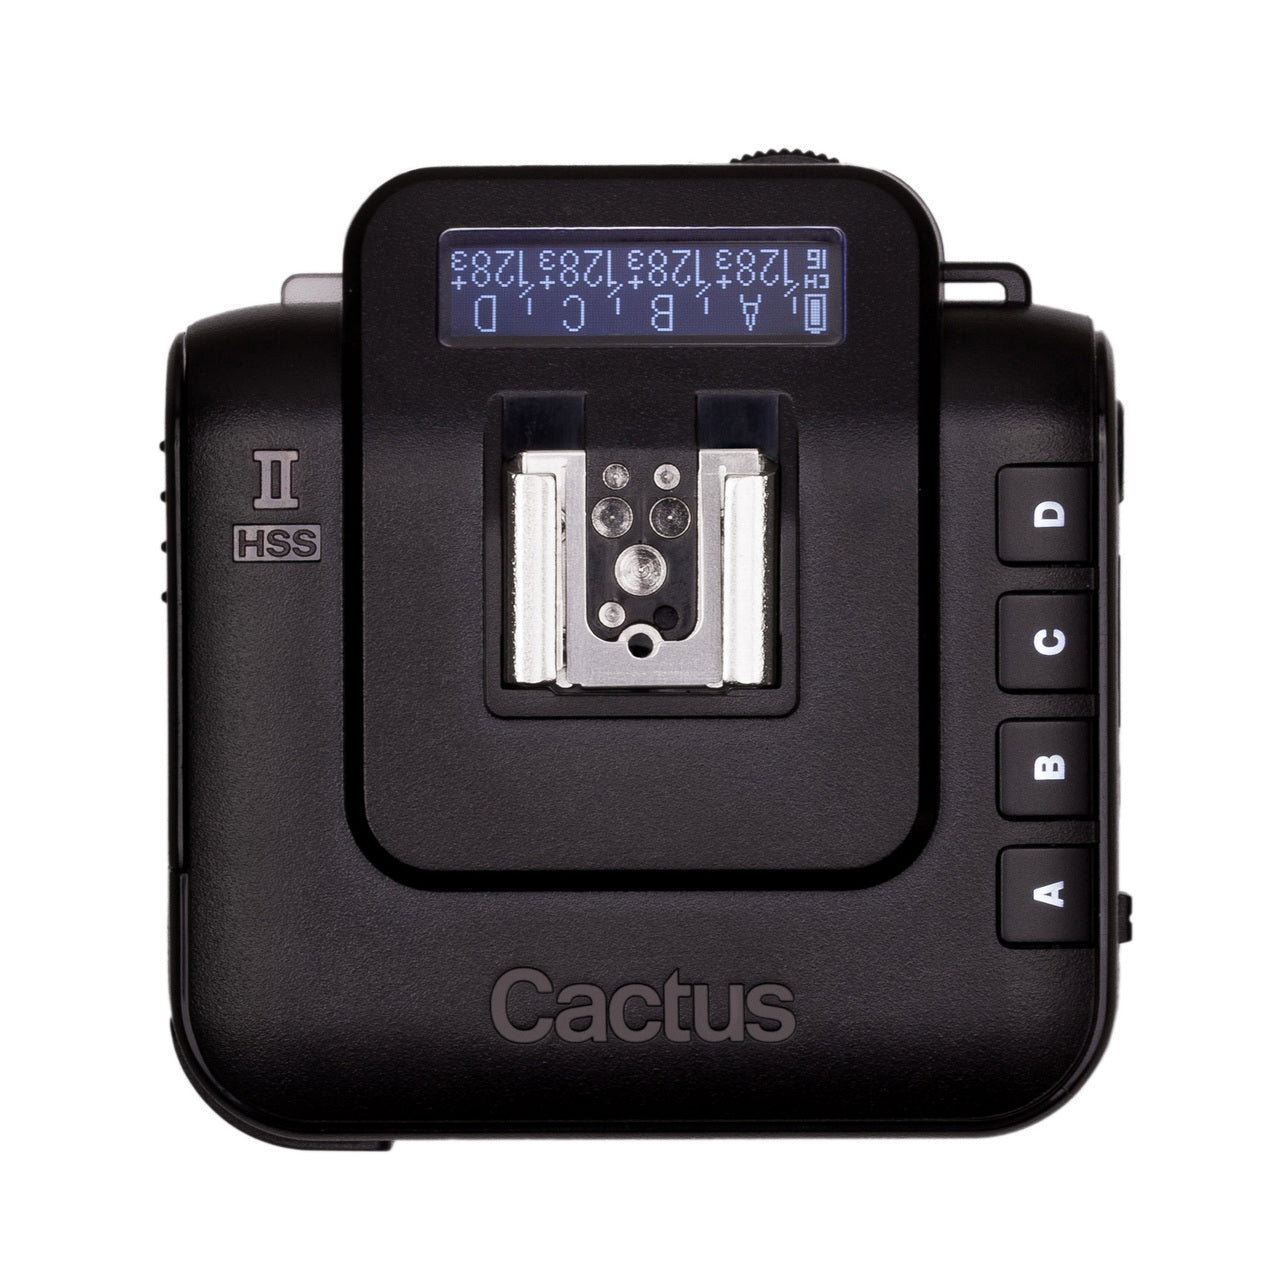 Cactus Wireless HHS Flash Transceiver V6 II